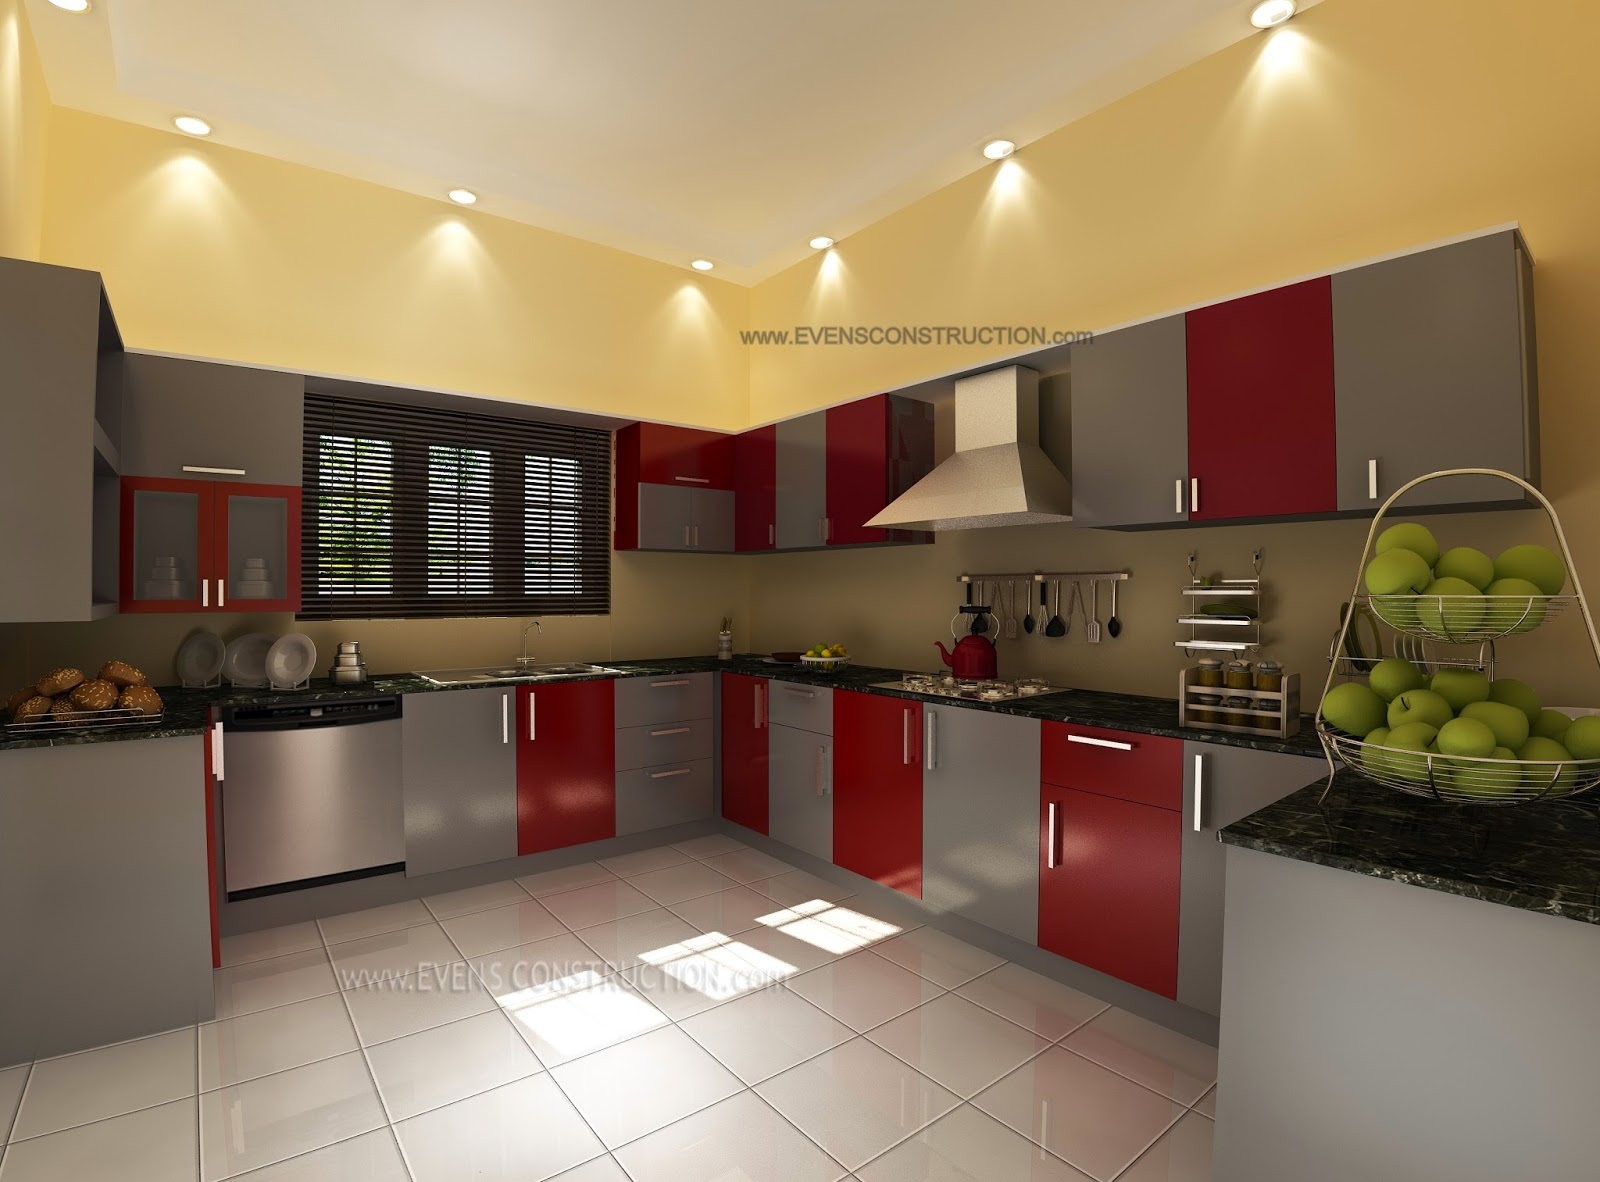 Elegant Charmant Simple And Cute Kerala Kitchen Interior Design